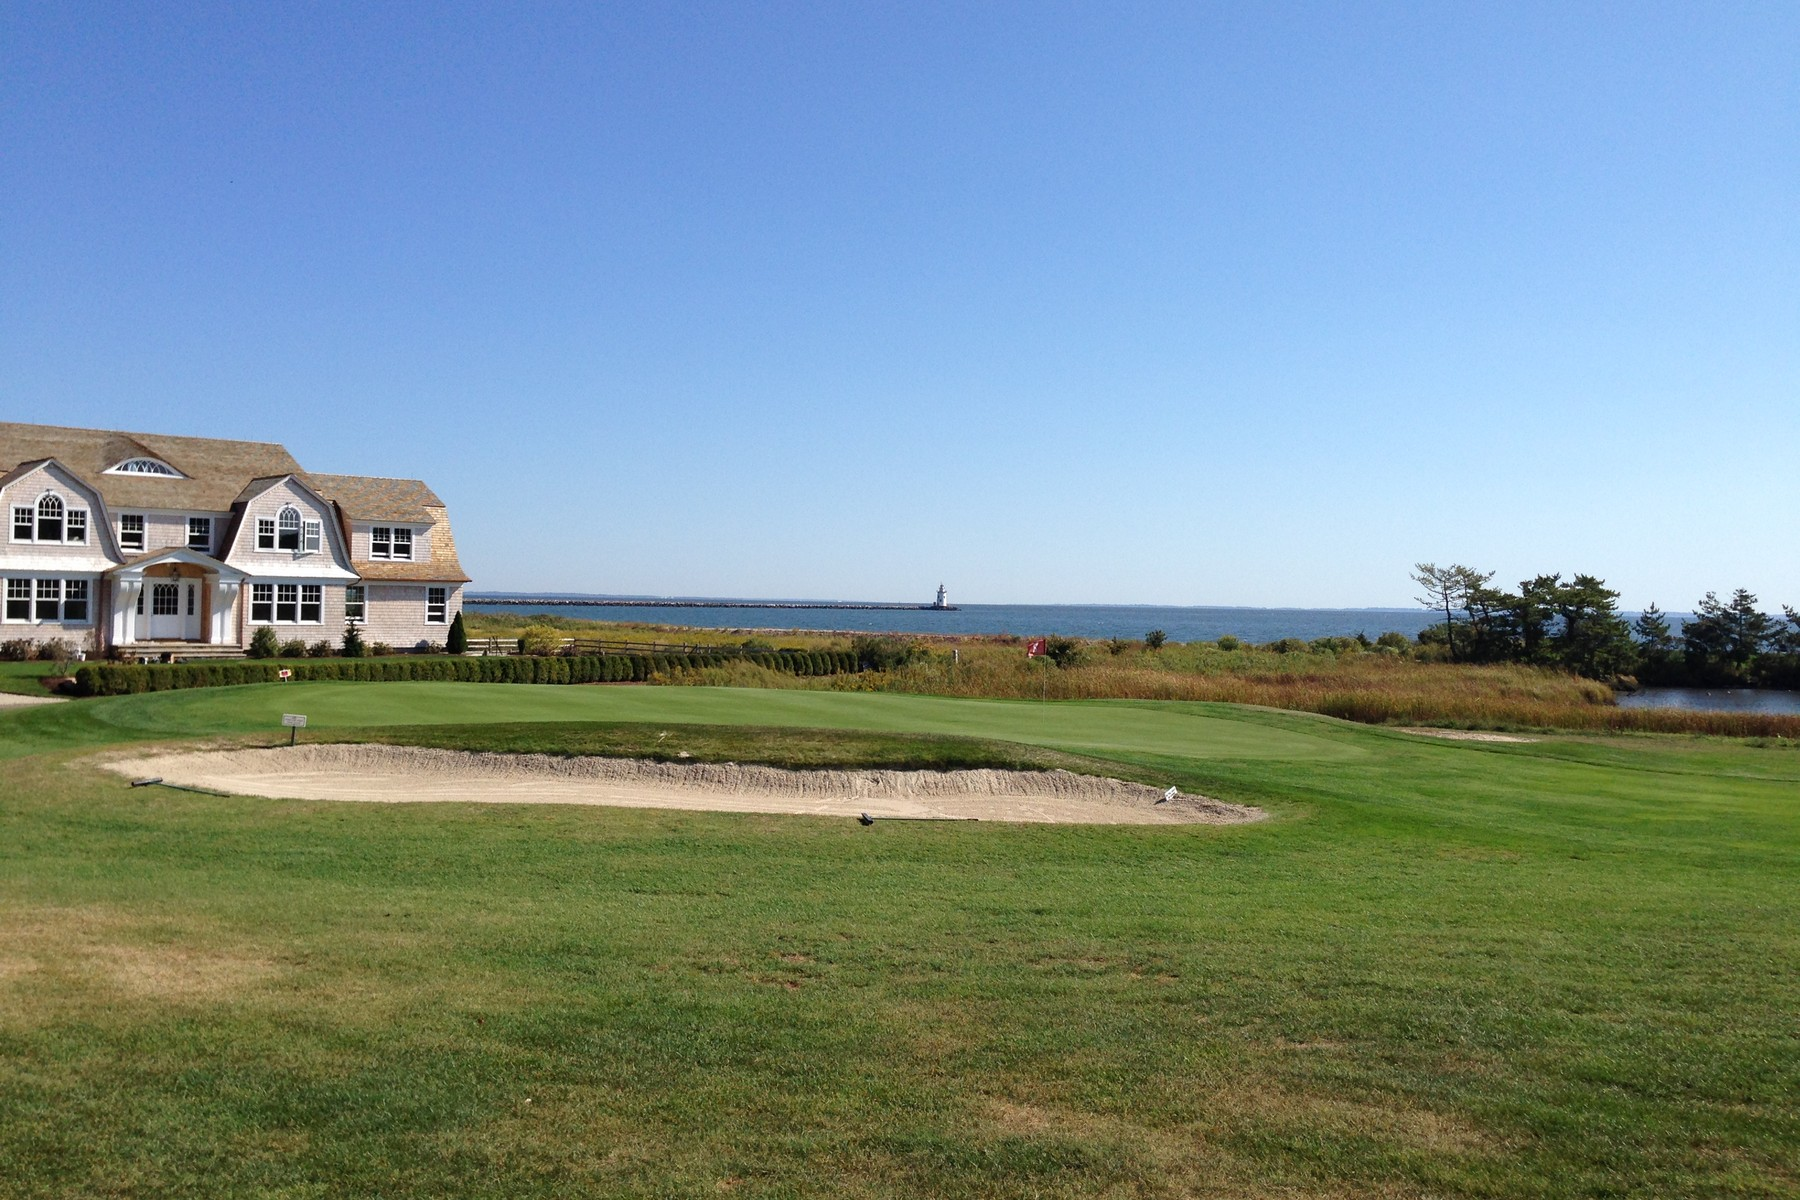 Additional photo for property listing at Surrounded by Water on 3 Sides 102b Sequassen Ave Old Saybrook, Connecticut 06475 United States